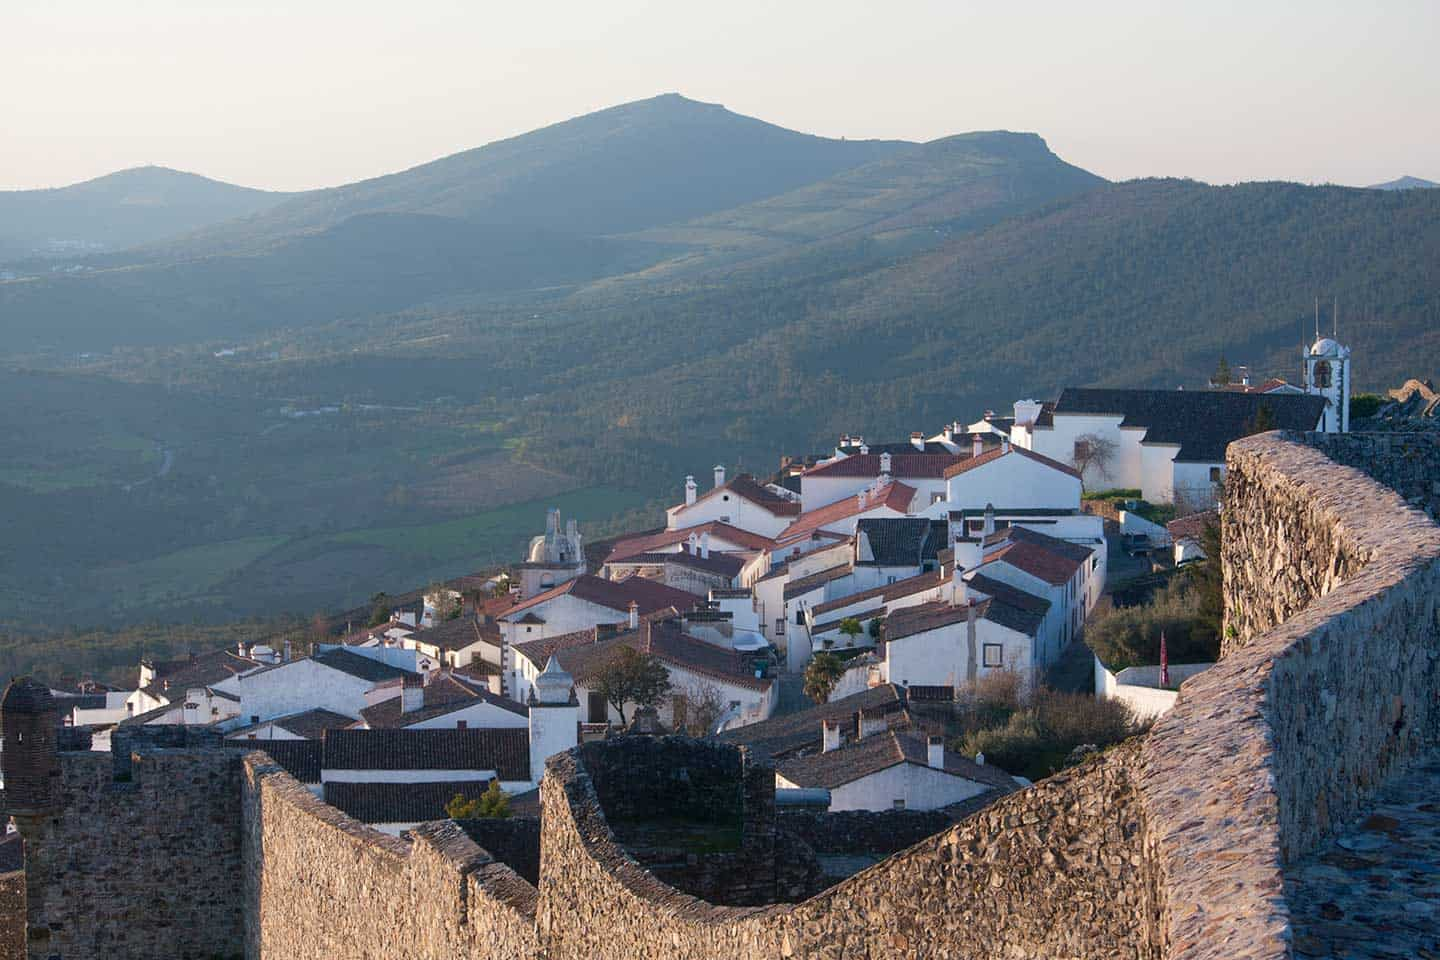 Image of the village and ramparts from the castle in Marvao Portugal